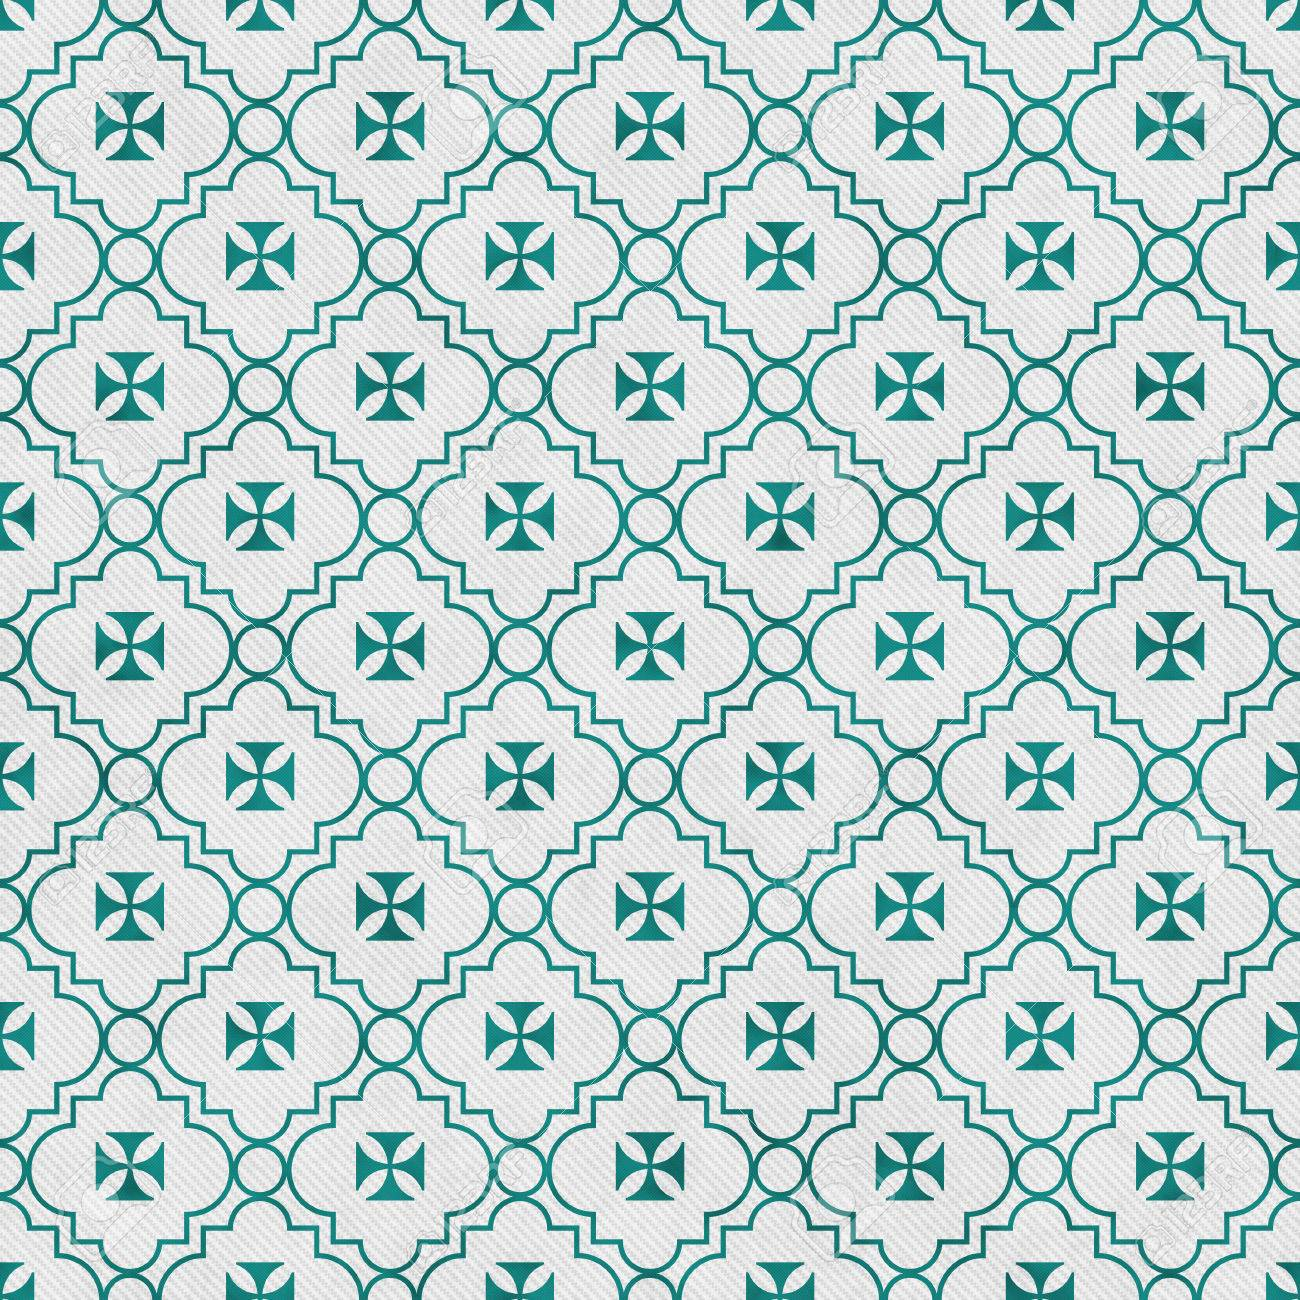 Teal And White Maltese Cross Symbol Tile Pattern Stock Photo ...